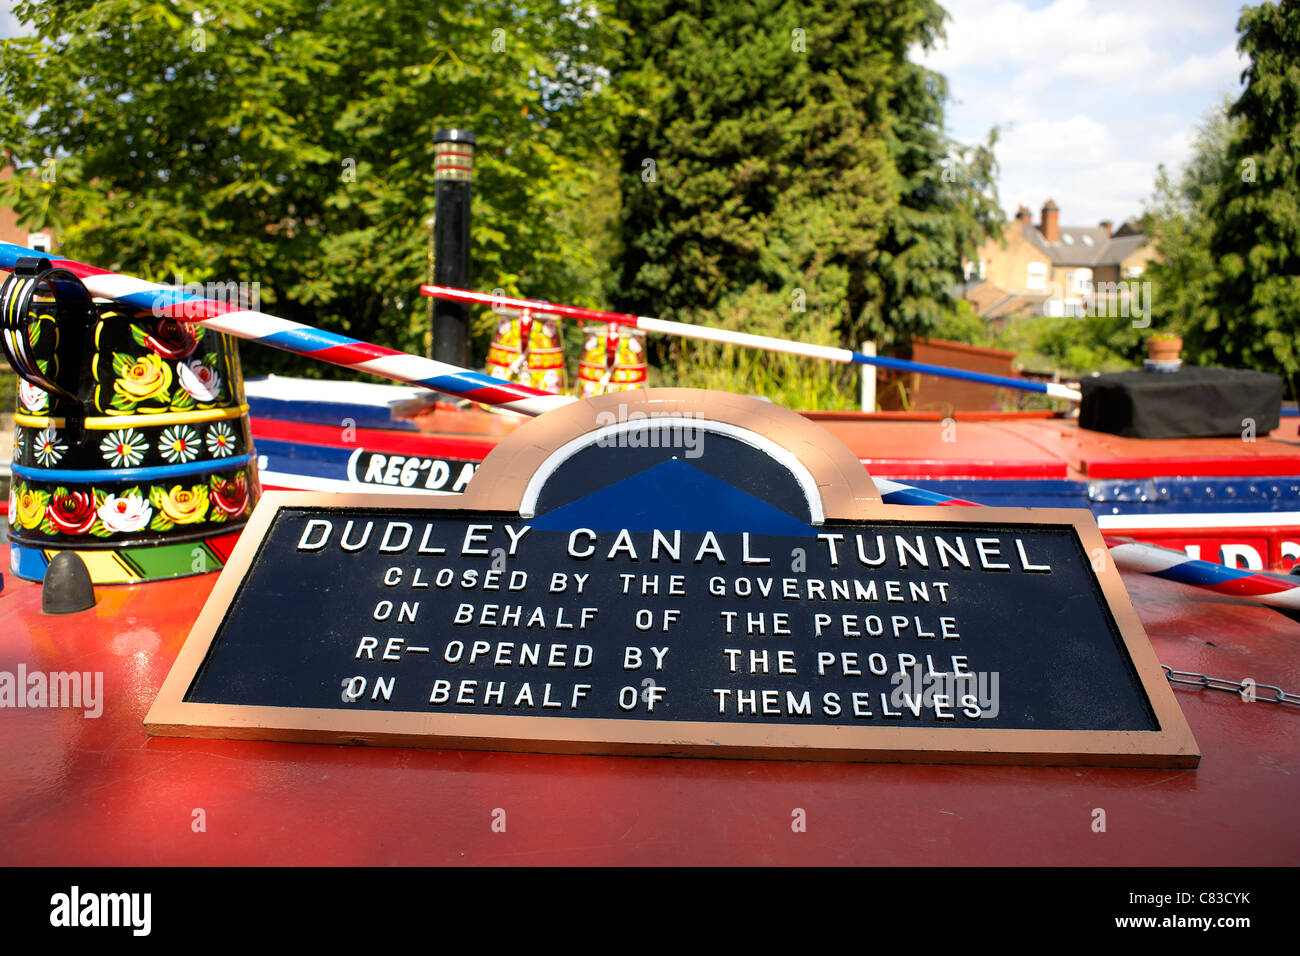 Notice on the roof of a narrowboat saying Dudley Canal Tunnel, closed by the government on behalf of the people, - Stock Image